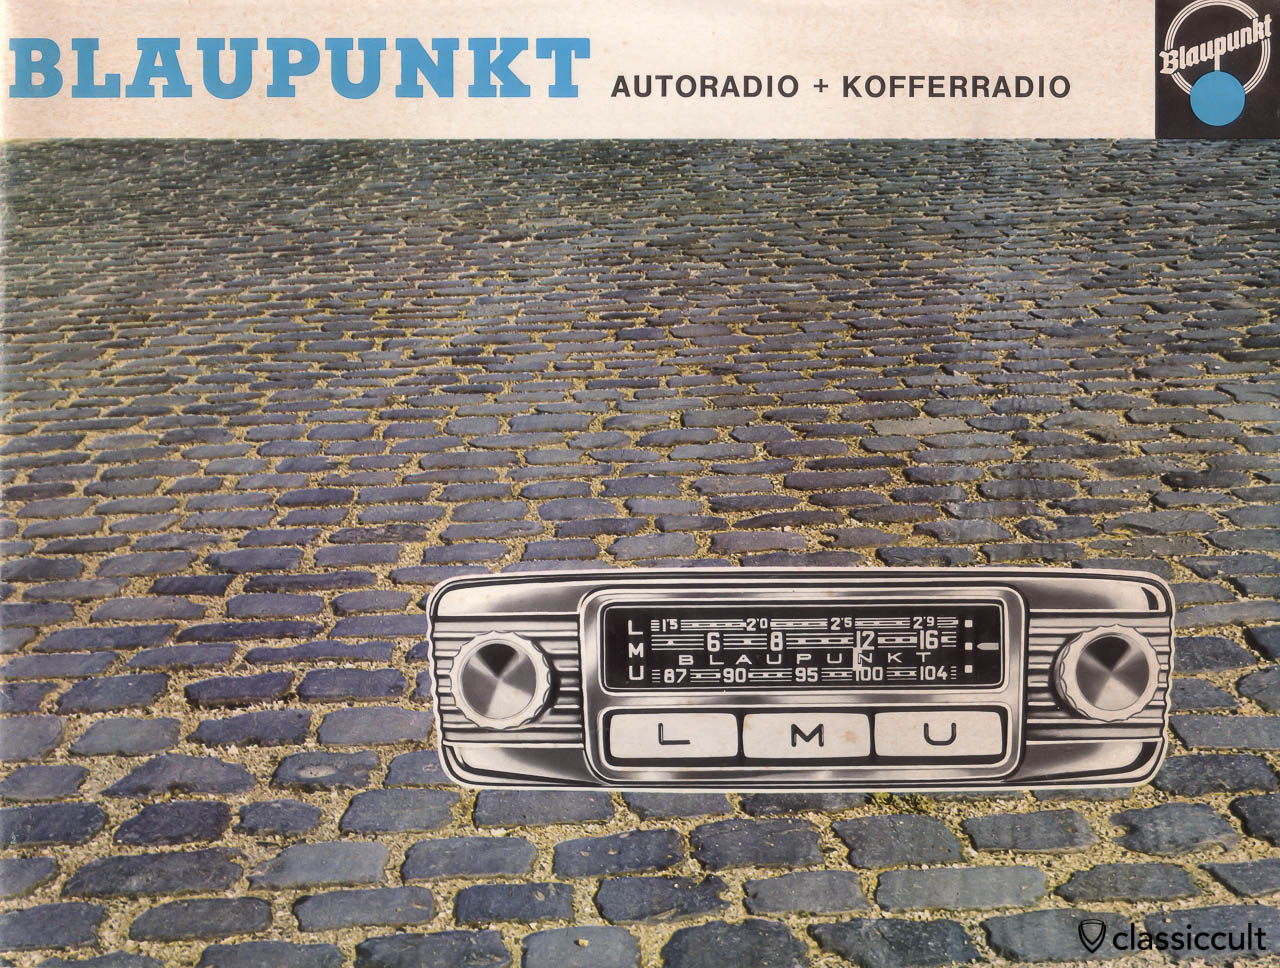 Blaupunkt car radio brochure 1963